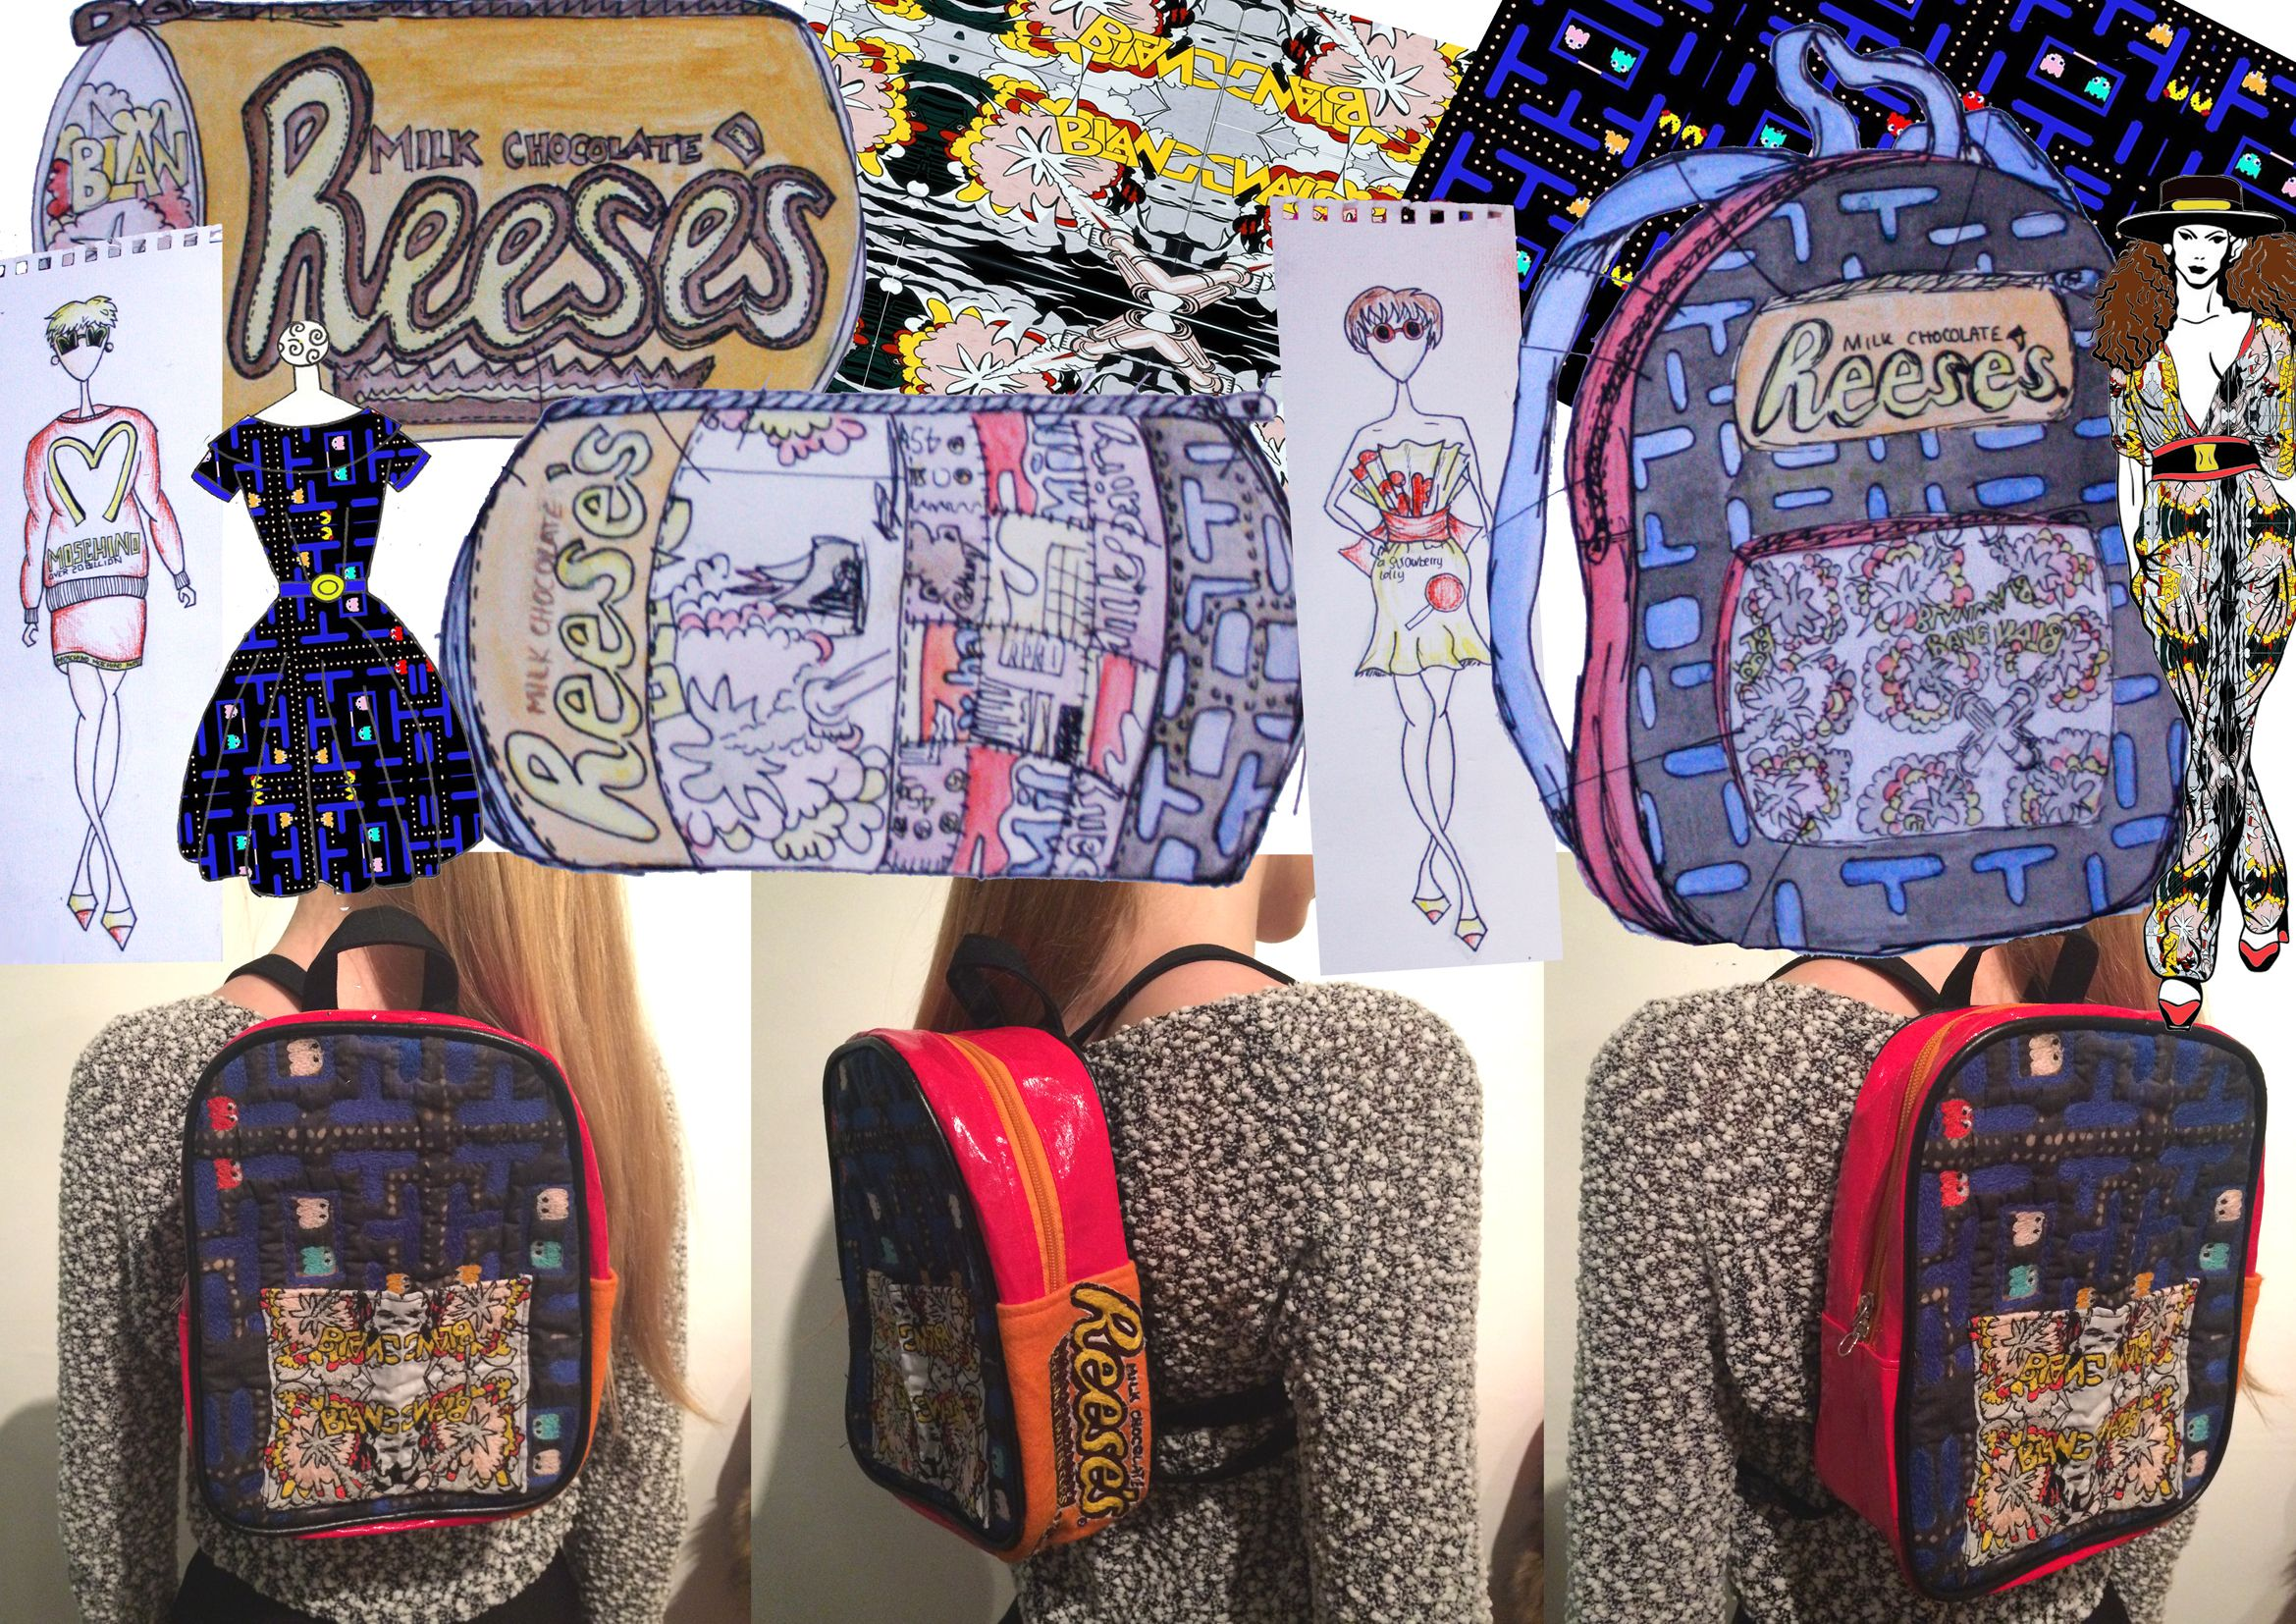 For my final piece in this project I chose to make a backpack. I thought this represented the whole of my theme well and I created a design which involved a range of ideas from my sketch book. I tried out a lot of different designs before I finished on my final one and even then when creating the bag I adjusted it slightly.